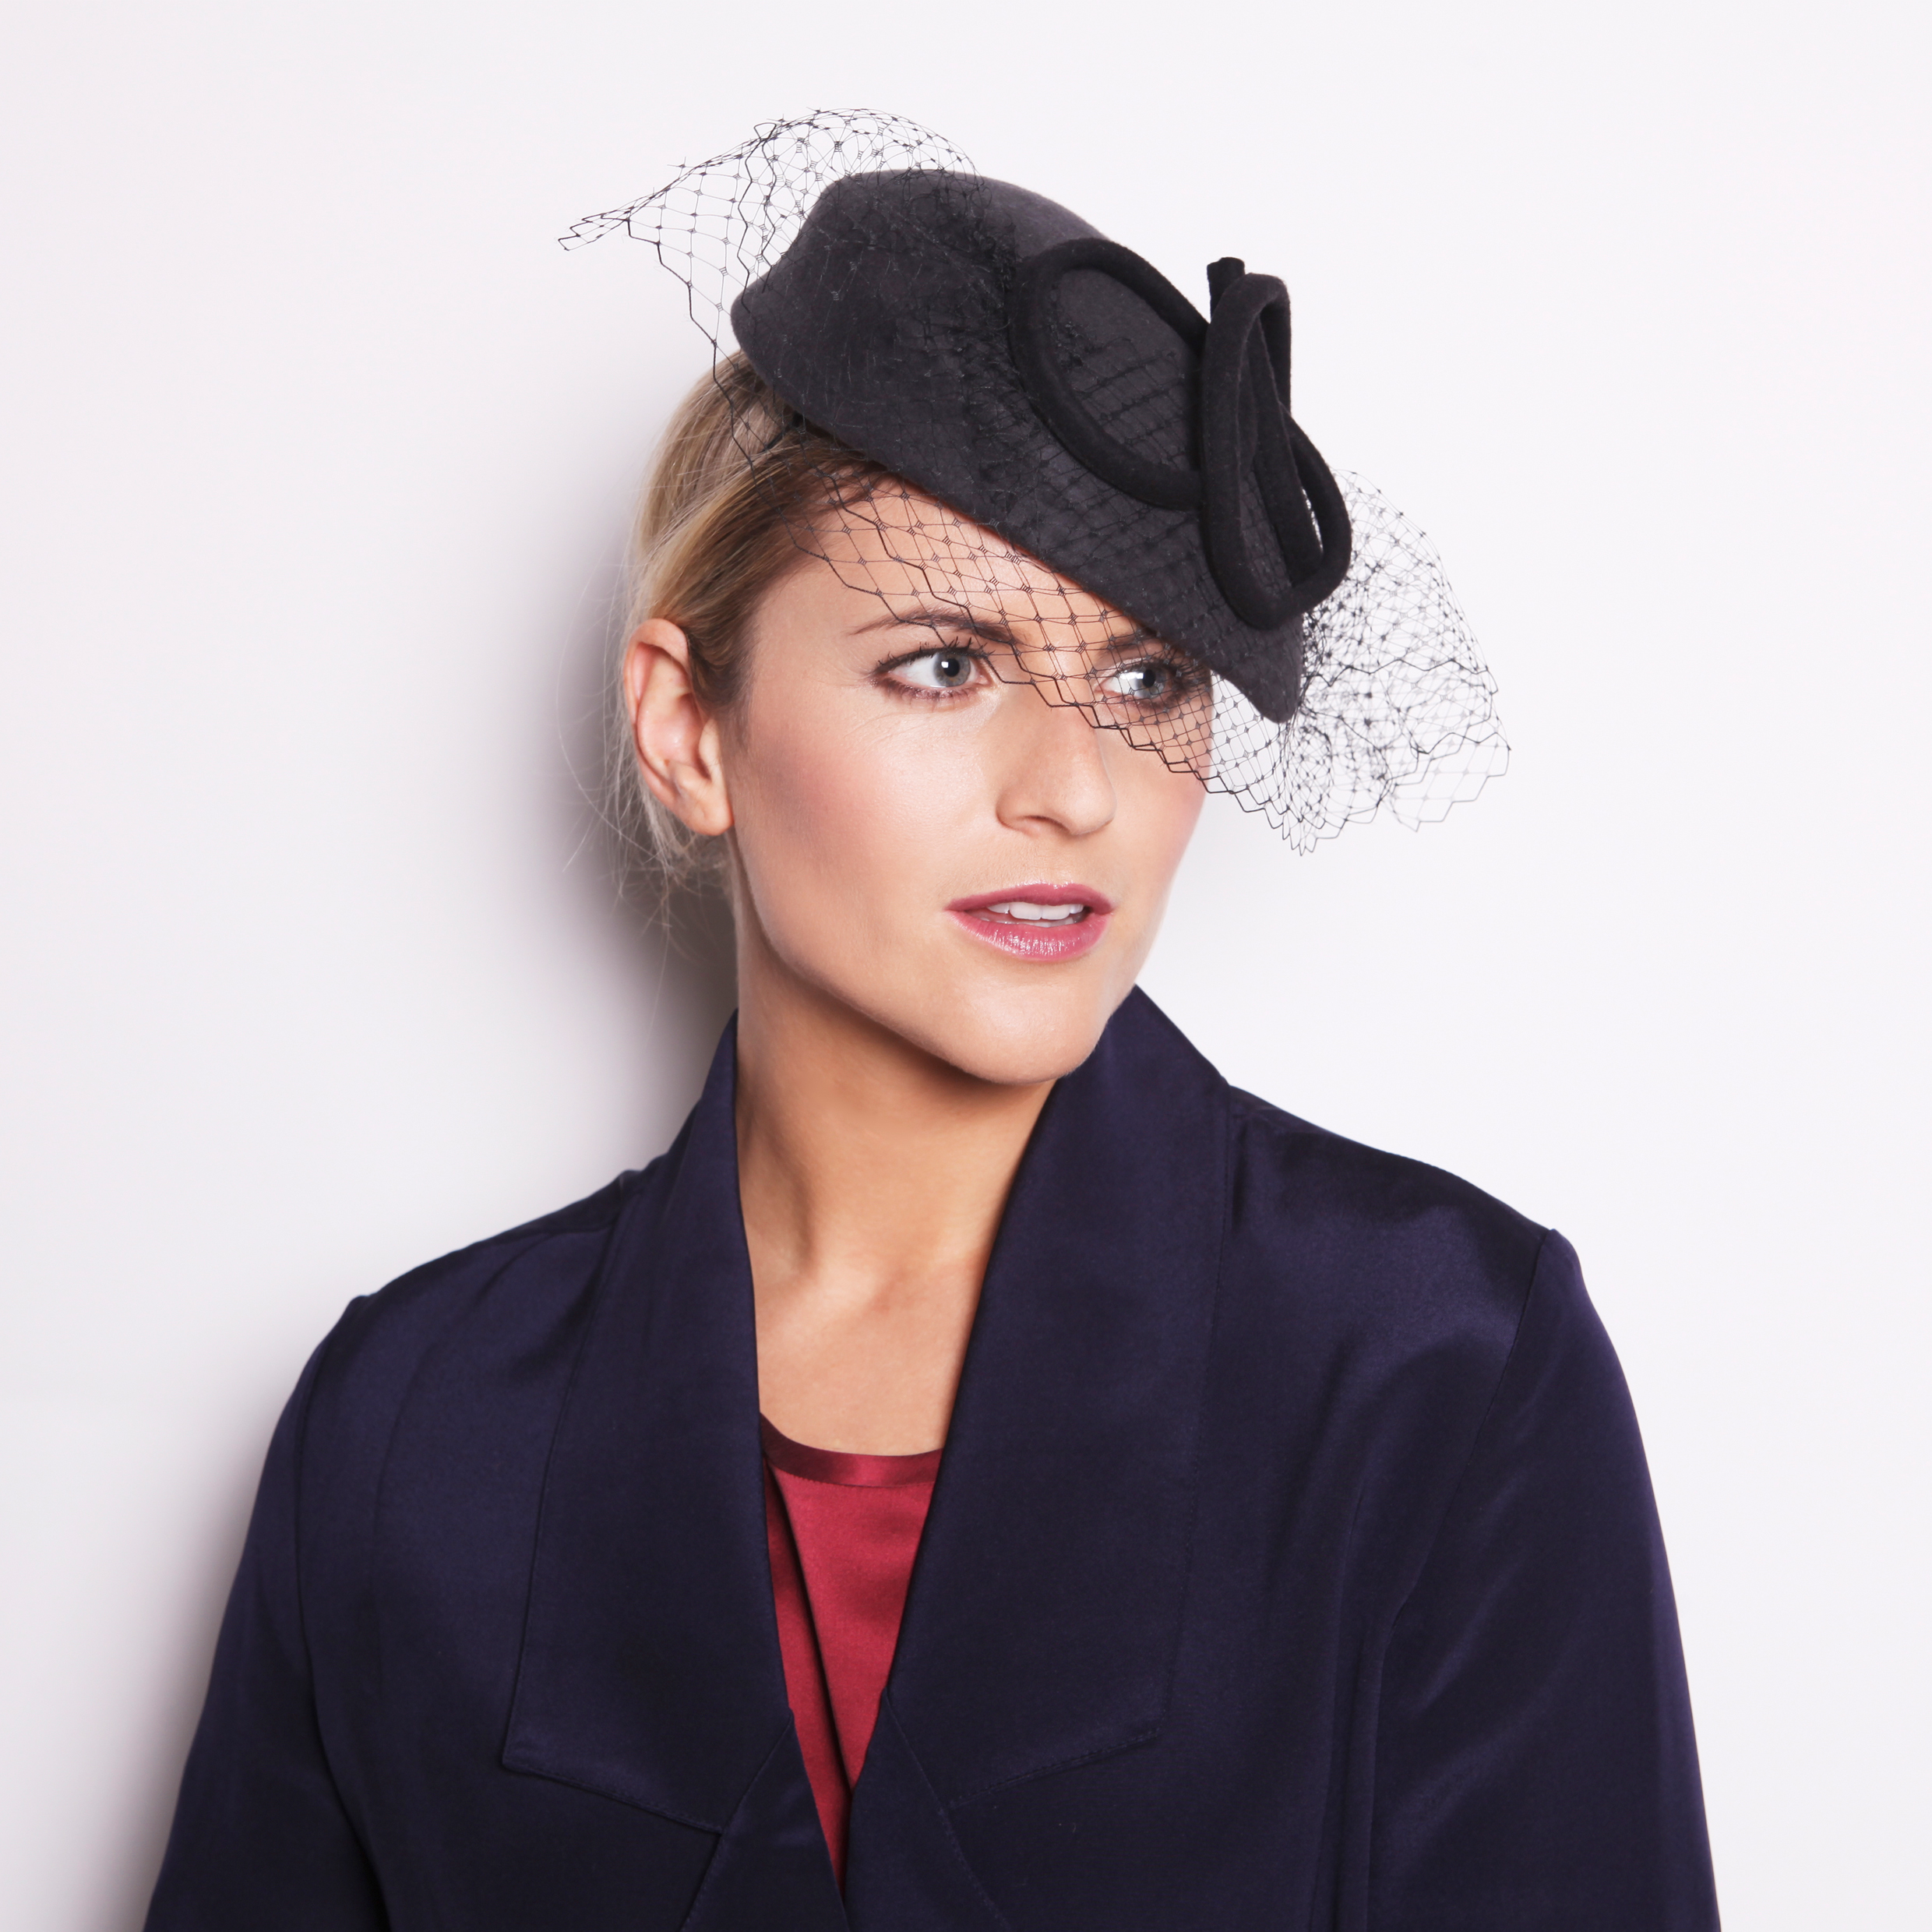 AILE - £75  Grey wool felt oval headpiece with black loops and black veiling.